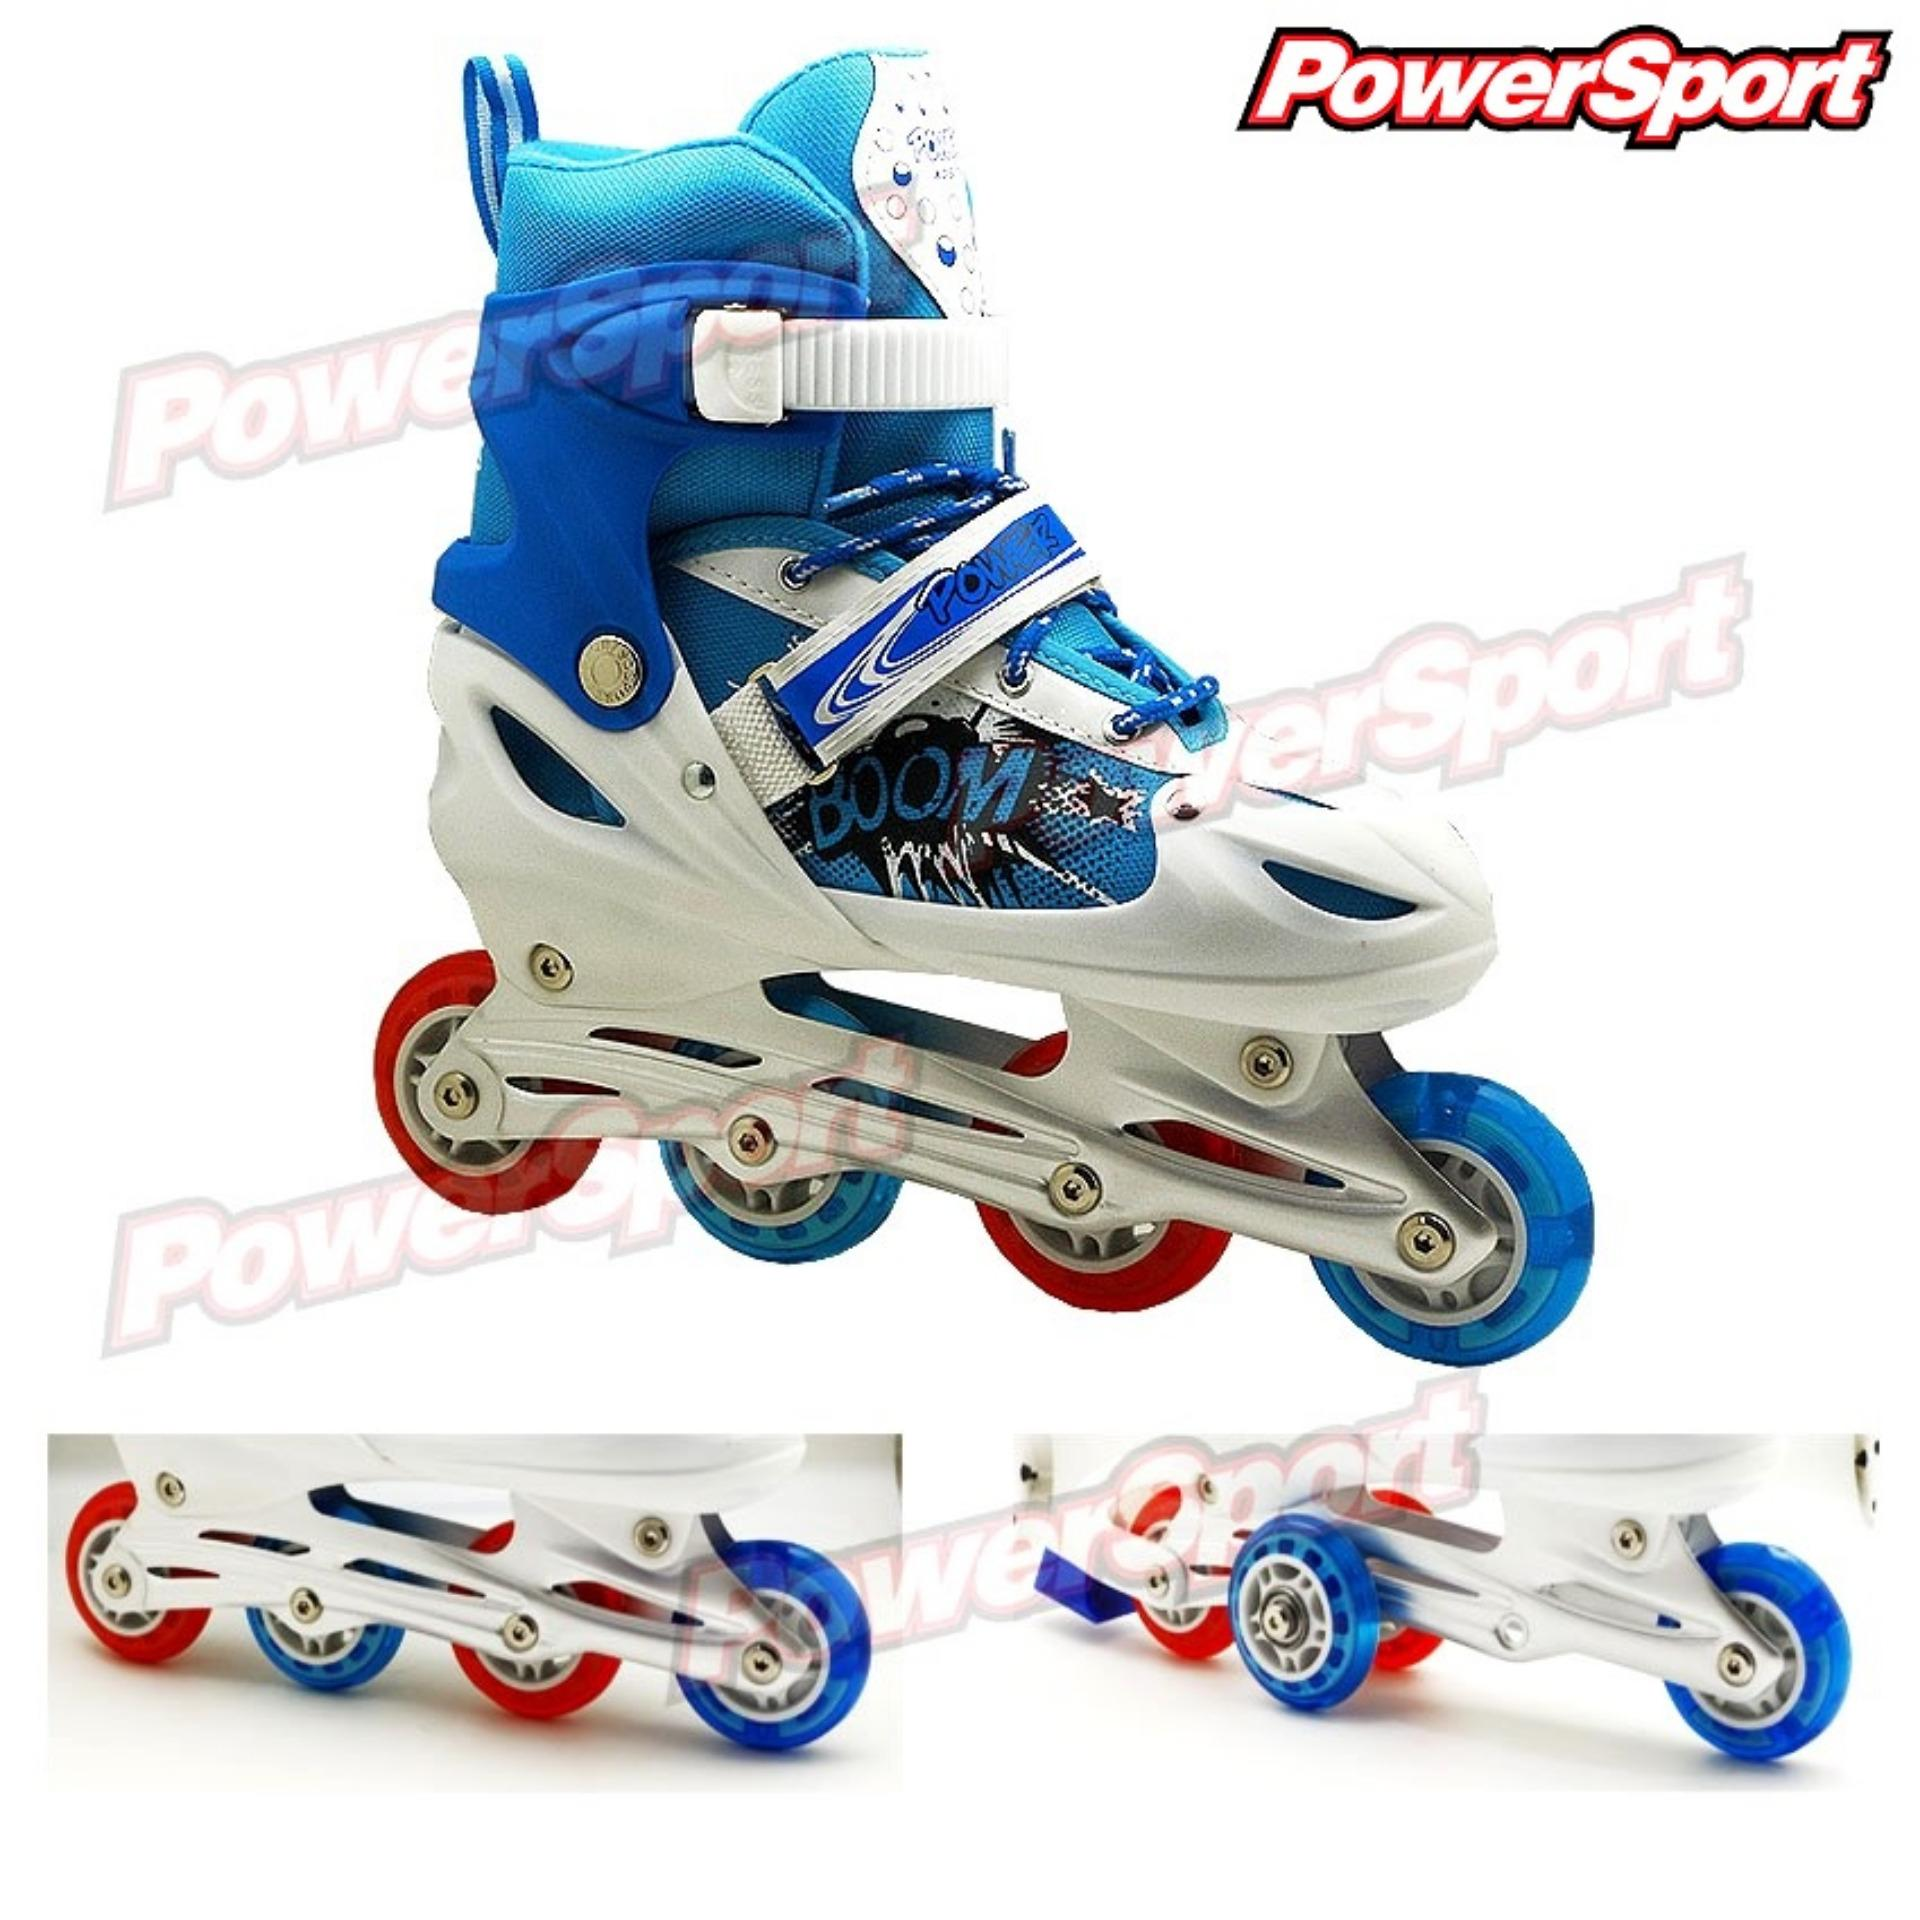 Powersport Boom Inline Skate Sepatu Roda Adjustable Wheel Biru L 38 42 Power Sport Diskon 40